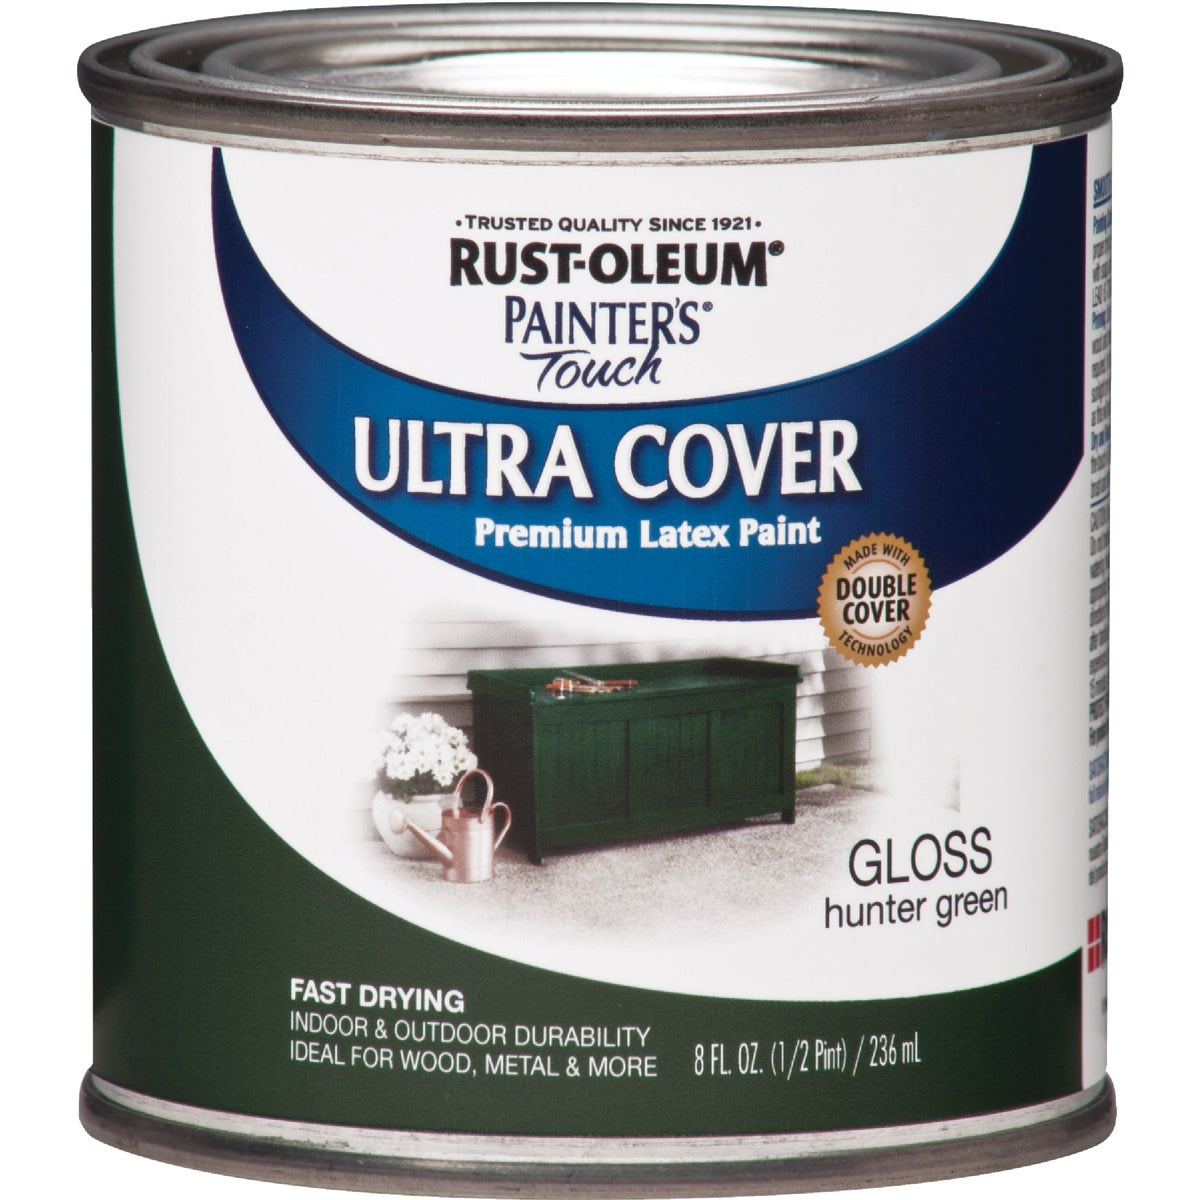 HUNTER GREEN LATEX PAINT - 1938-730 by Rustoleum